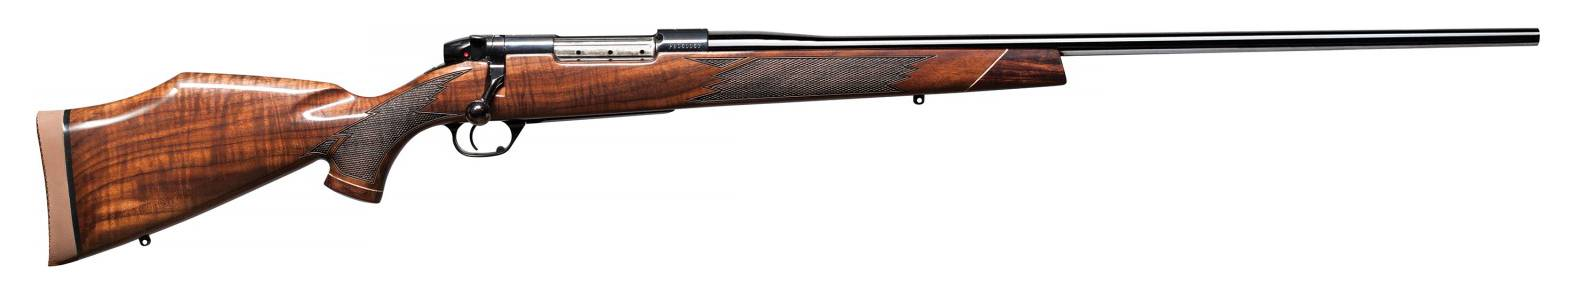 Weatherby MDXM460WR8B Mark V Deluxe Bolt 460 Weatherby Magnum 28